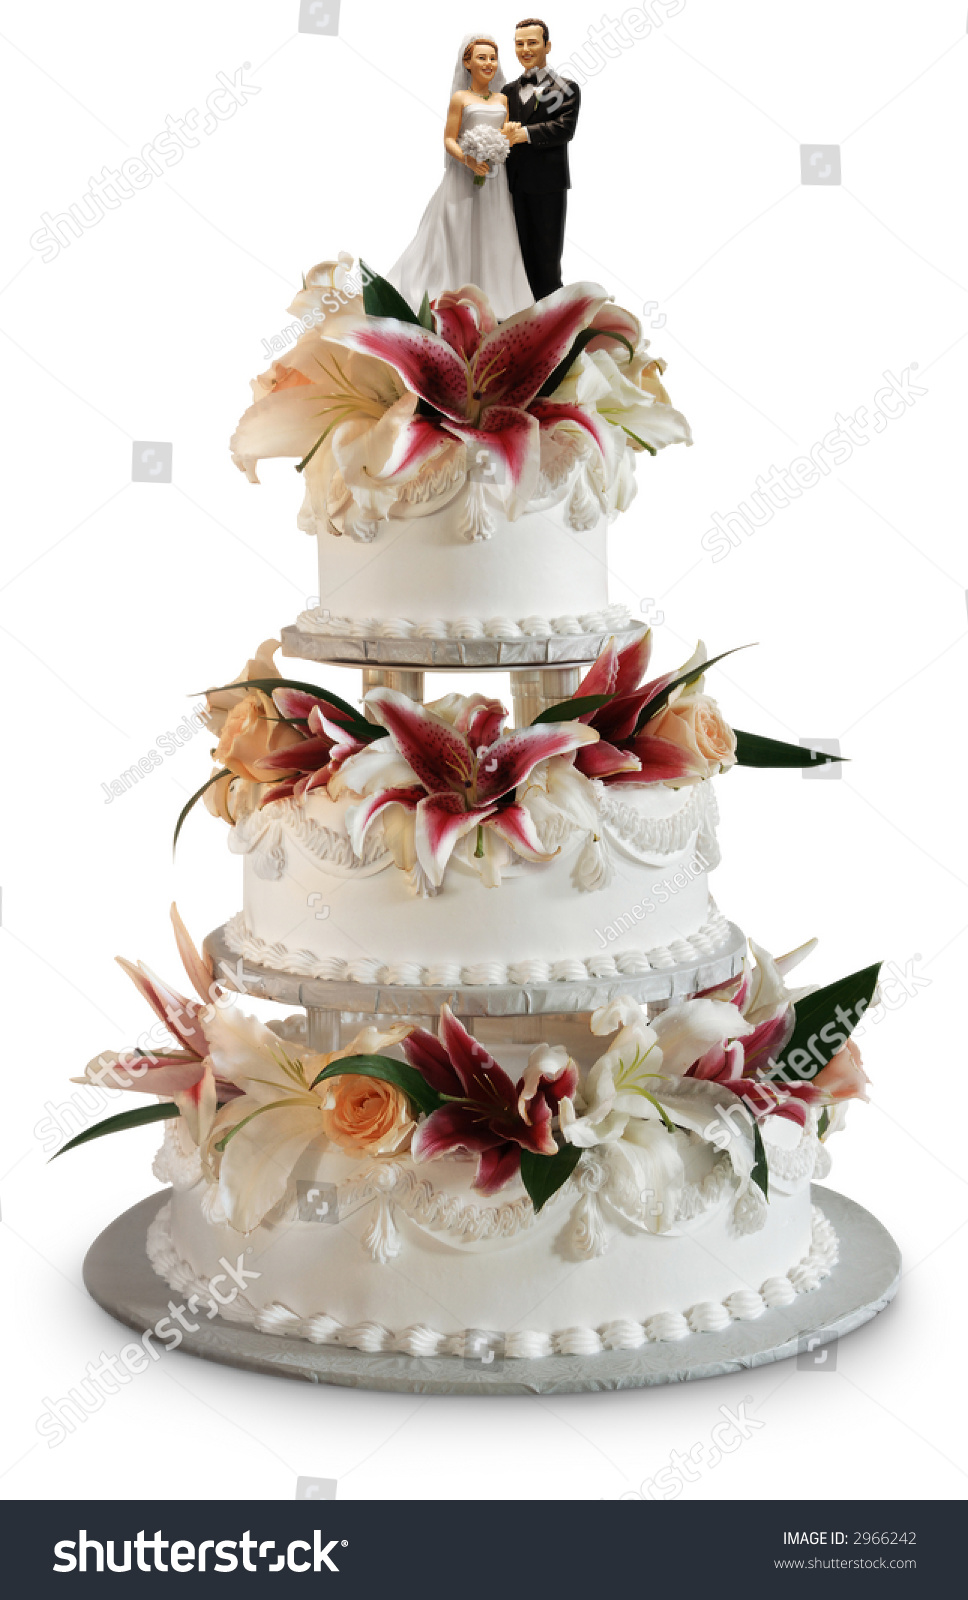 top tier of wedding cake traditions traditional three layer wedding cake decorated stock photo 21071